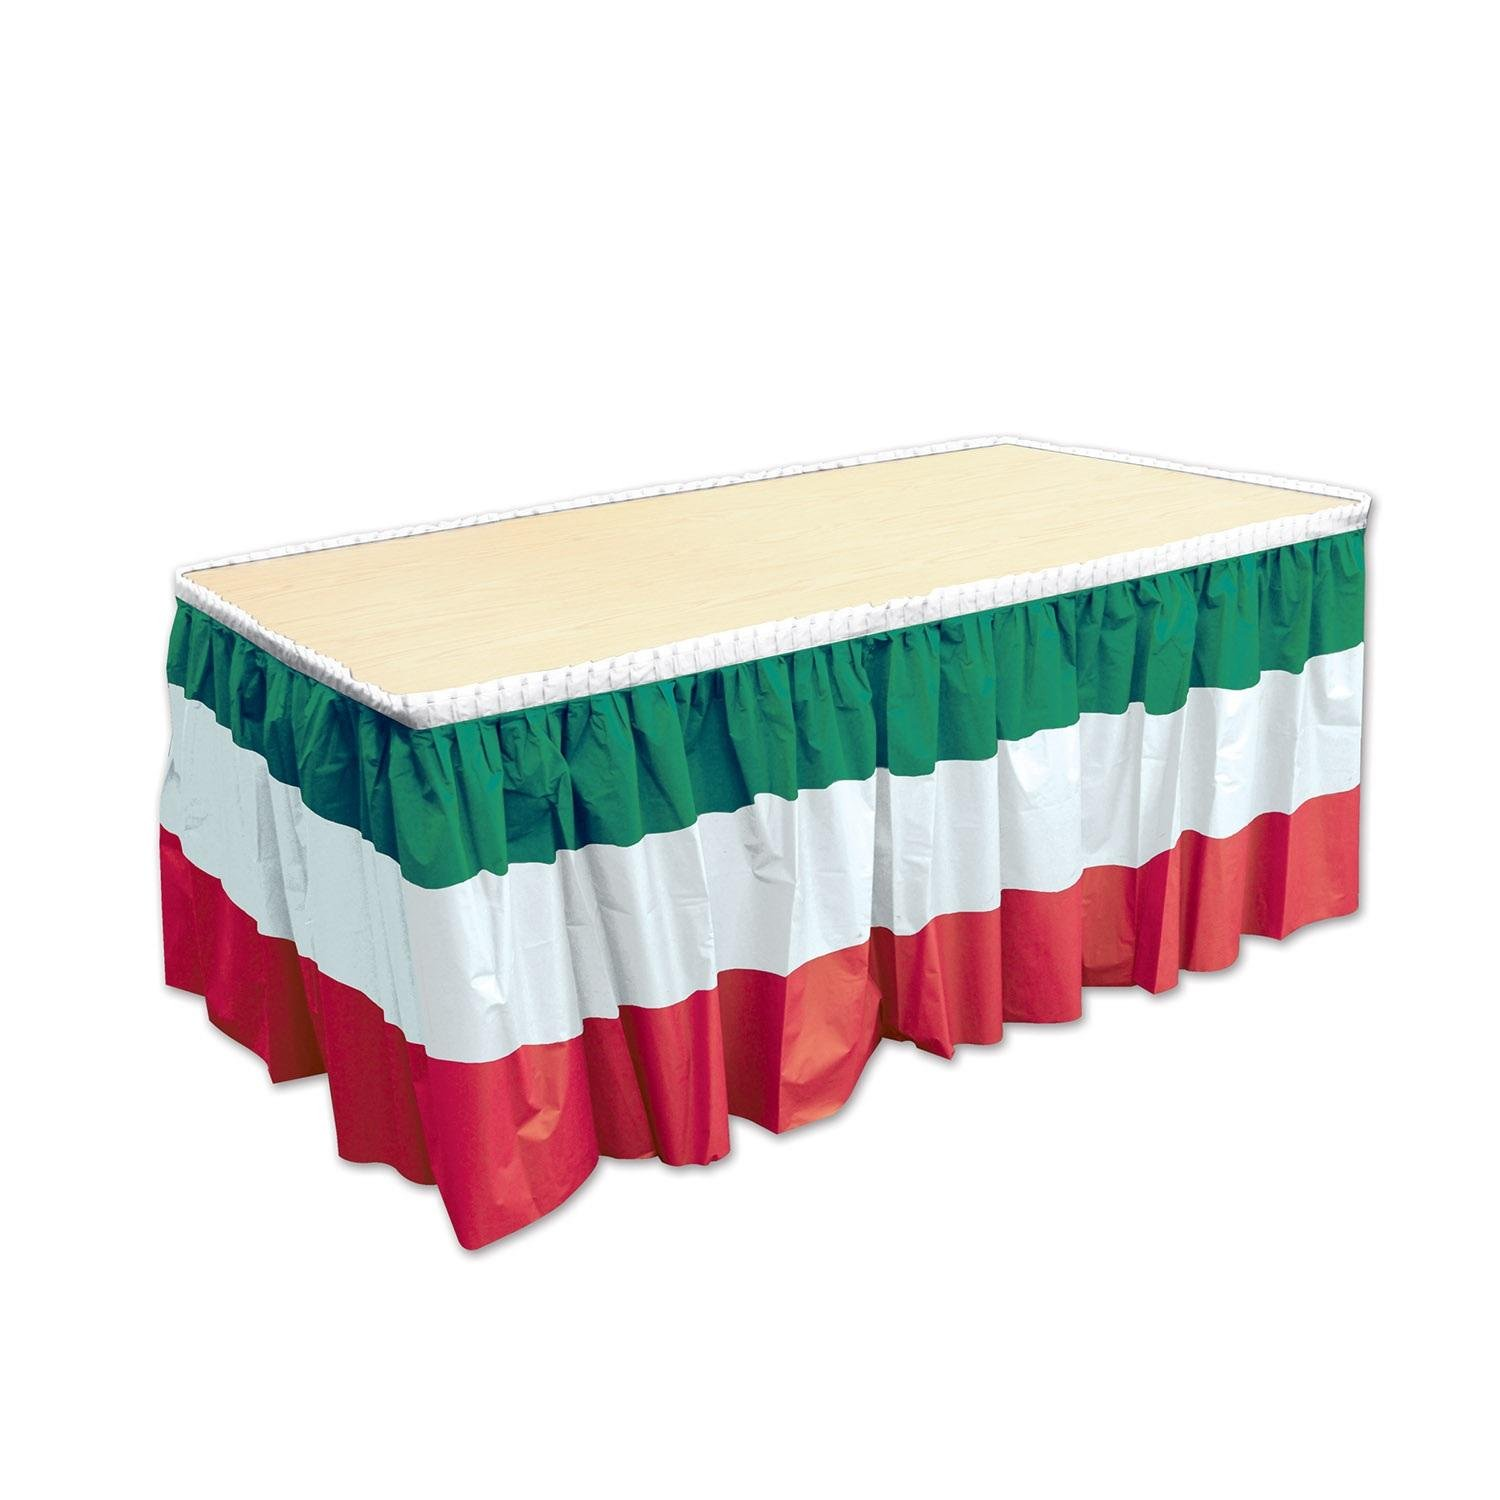 Pack of 6 Red, White and Green Italian Decorative Plastic Table Skirtings 14' White and Green Italian Decorative Plastic Table Skirtings 14' Party Central